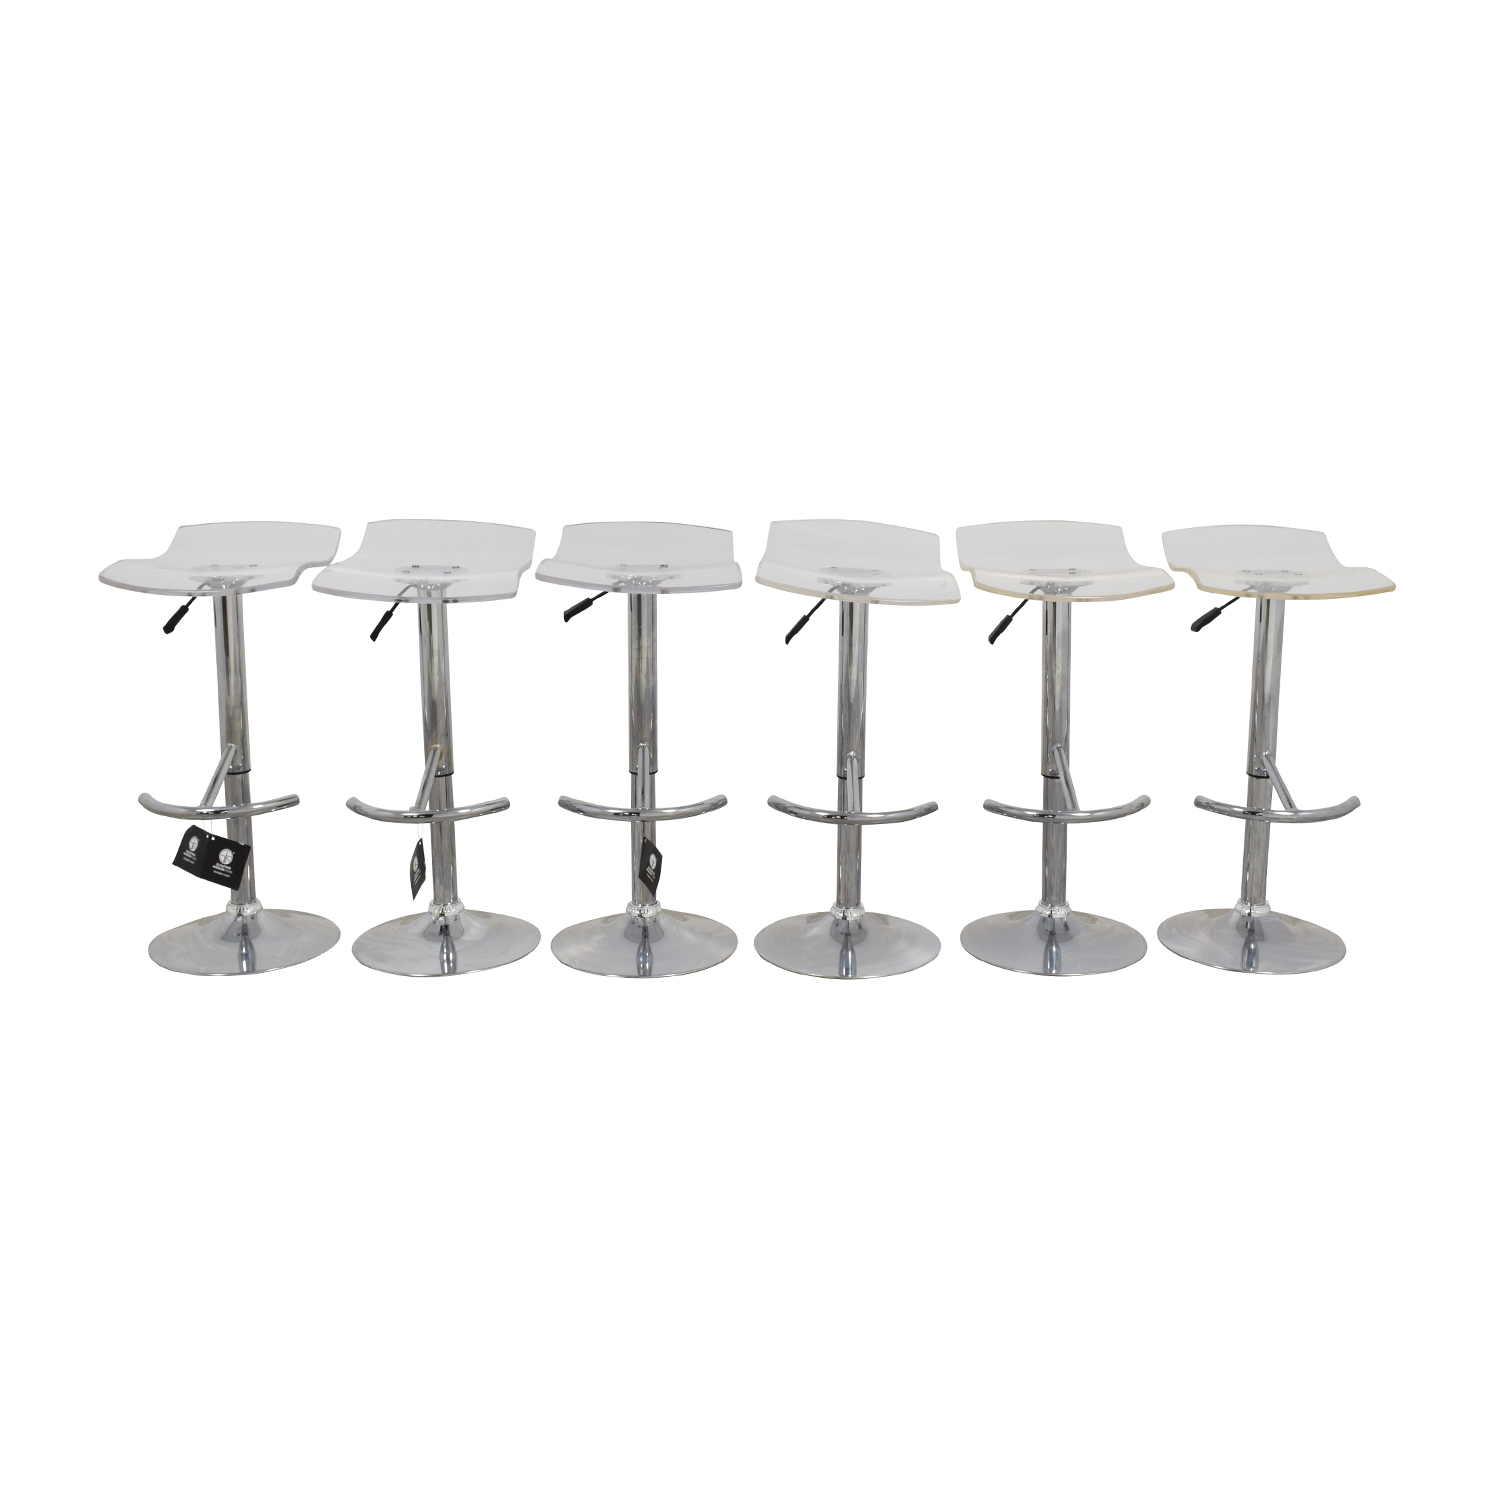 InMod California Ghost Adjustable Stools / Chairs